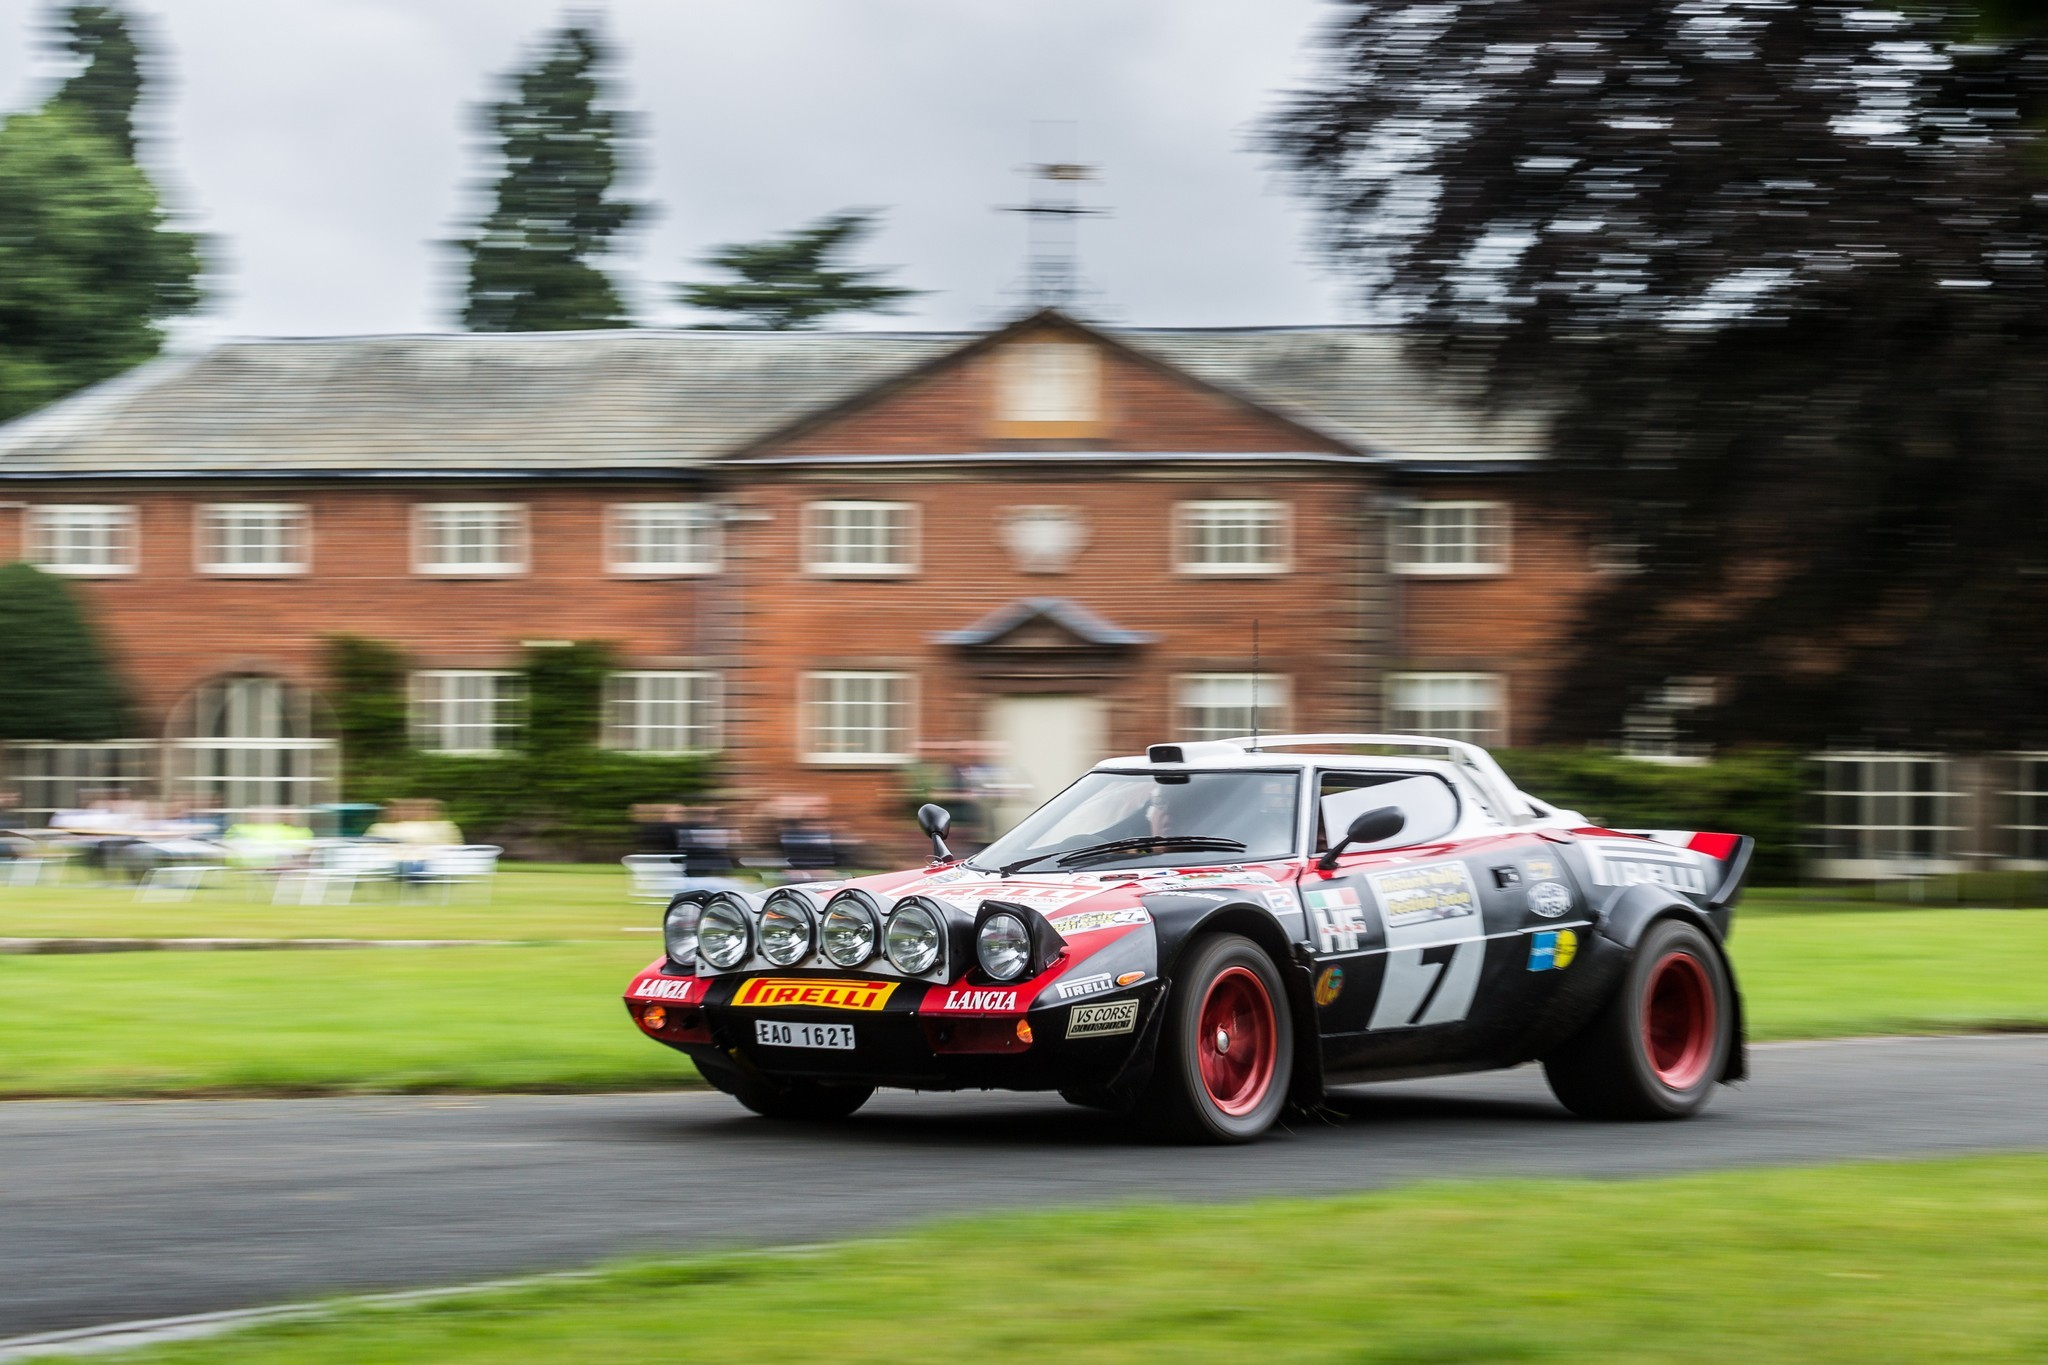 Hawk Stratos in front of the Weston Park buildings